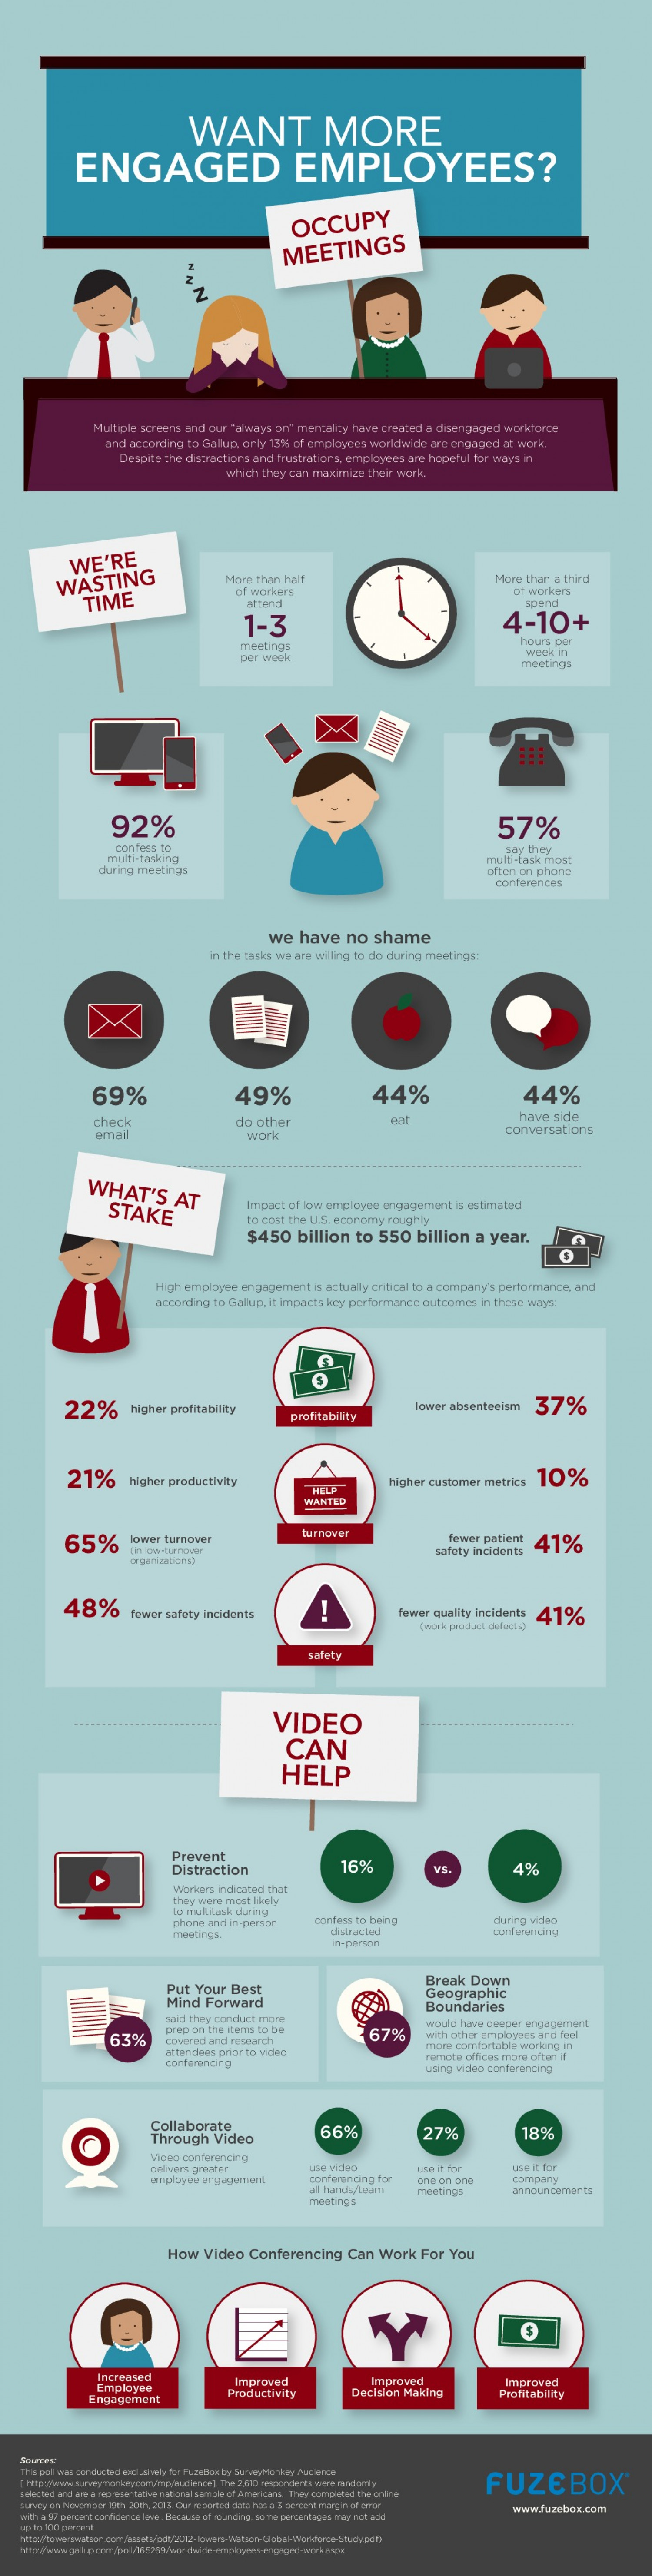 Want More Engaged Employees? Infographic